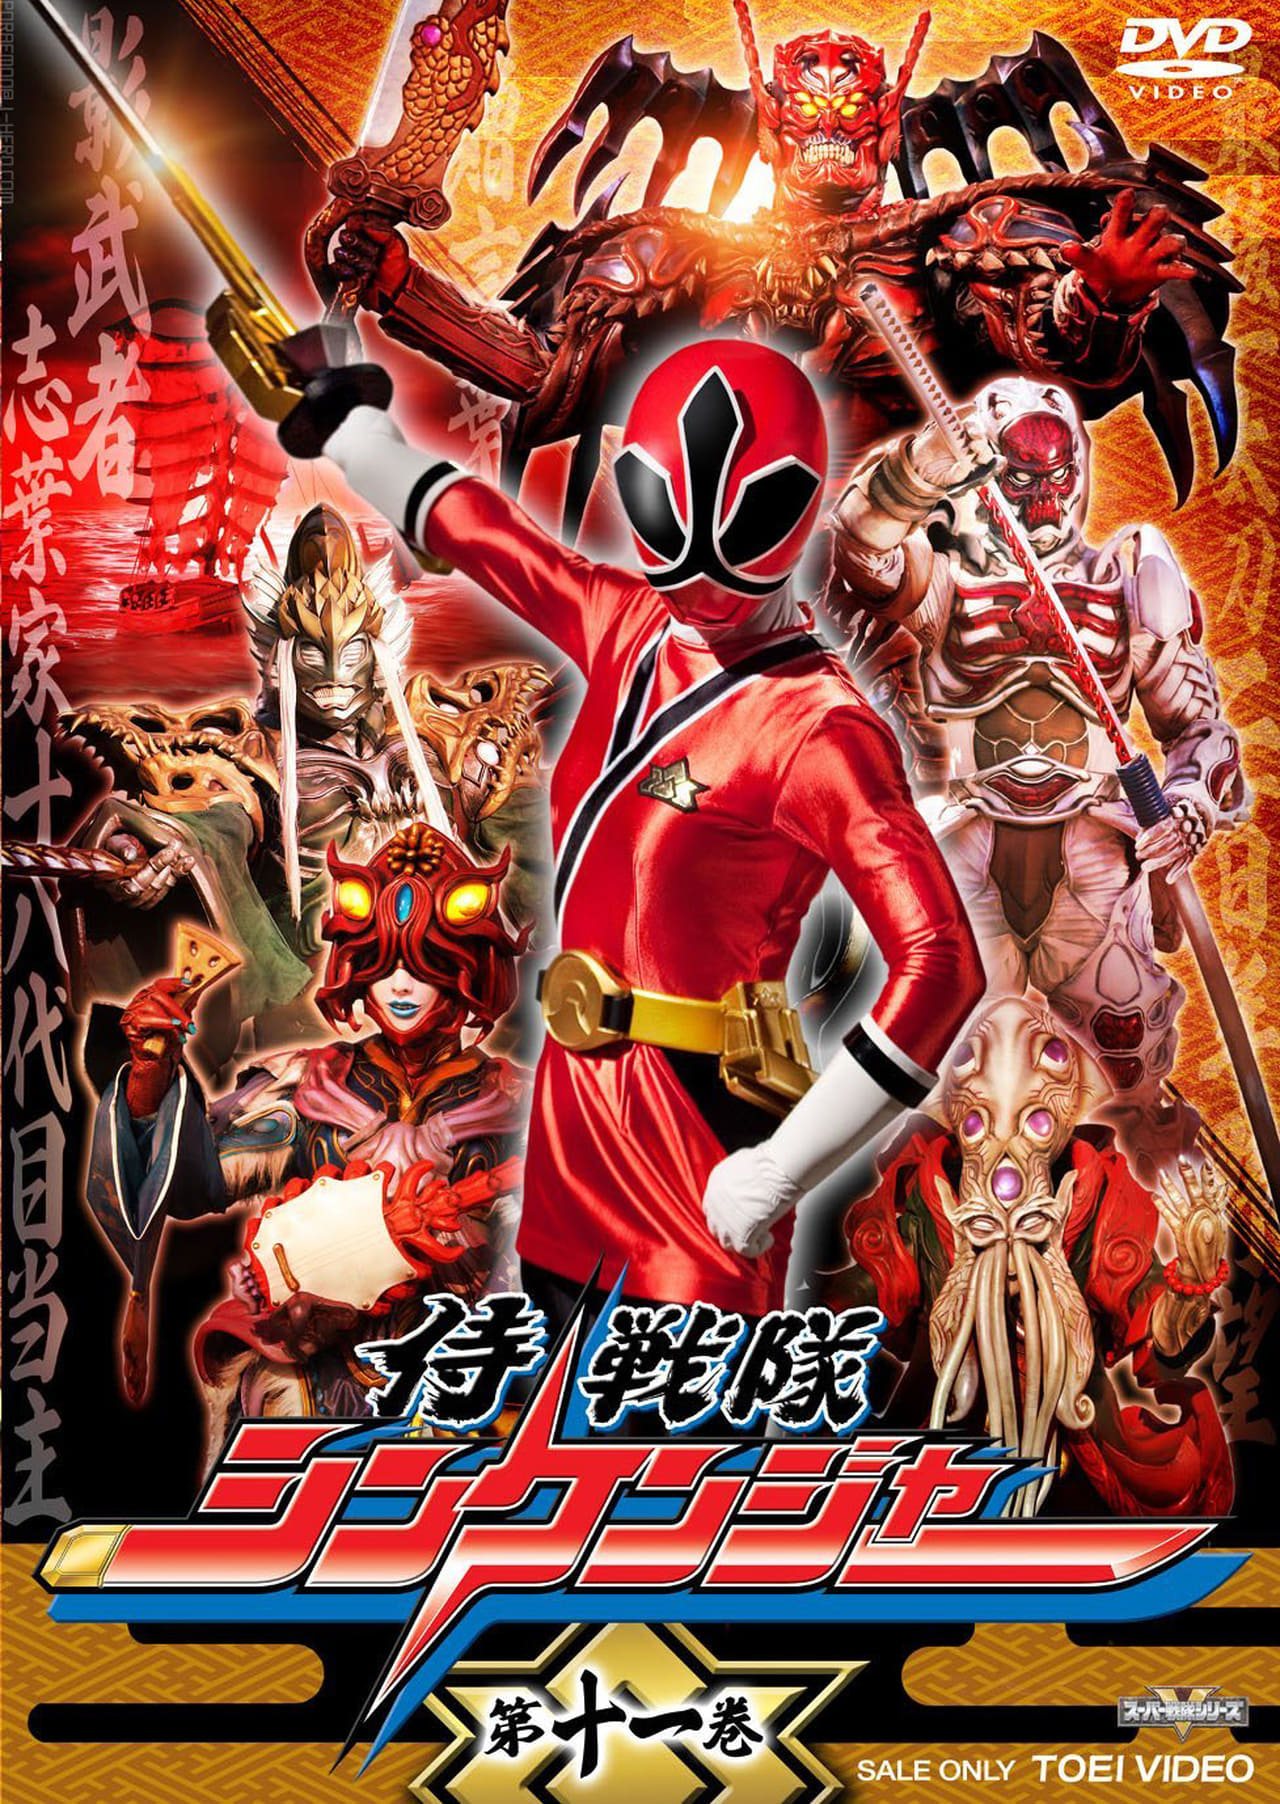 Watch Super Sentai Season 33 Online